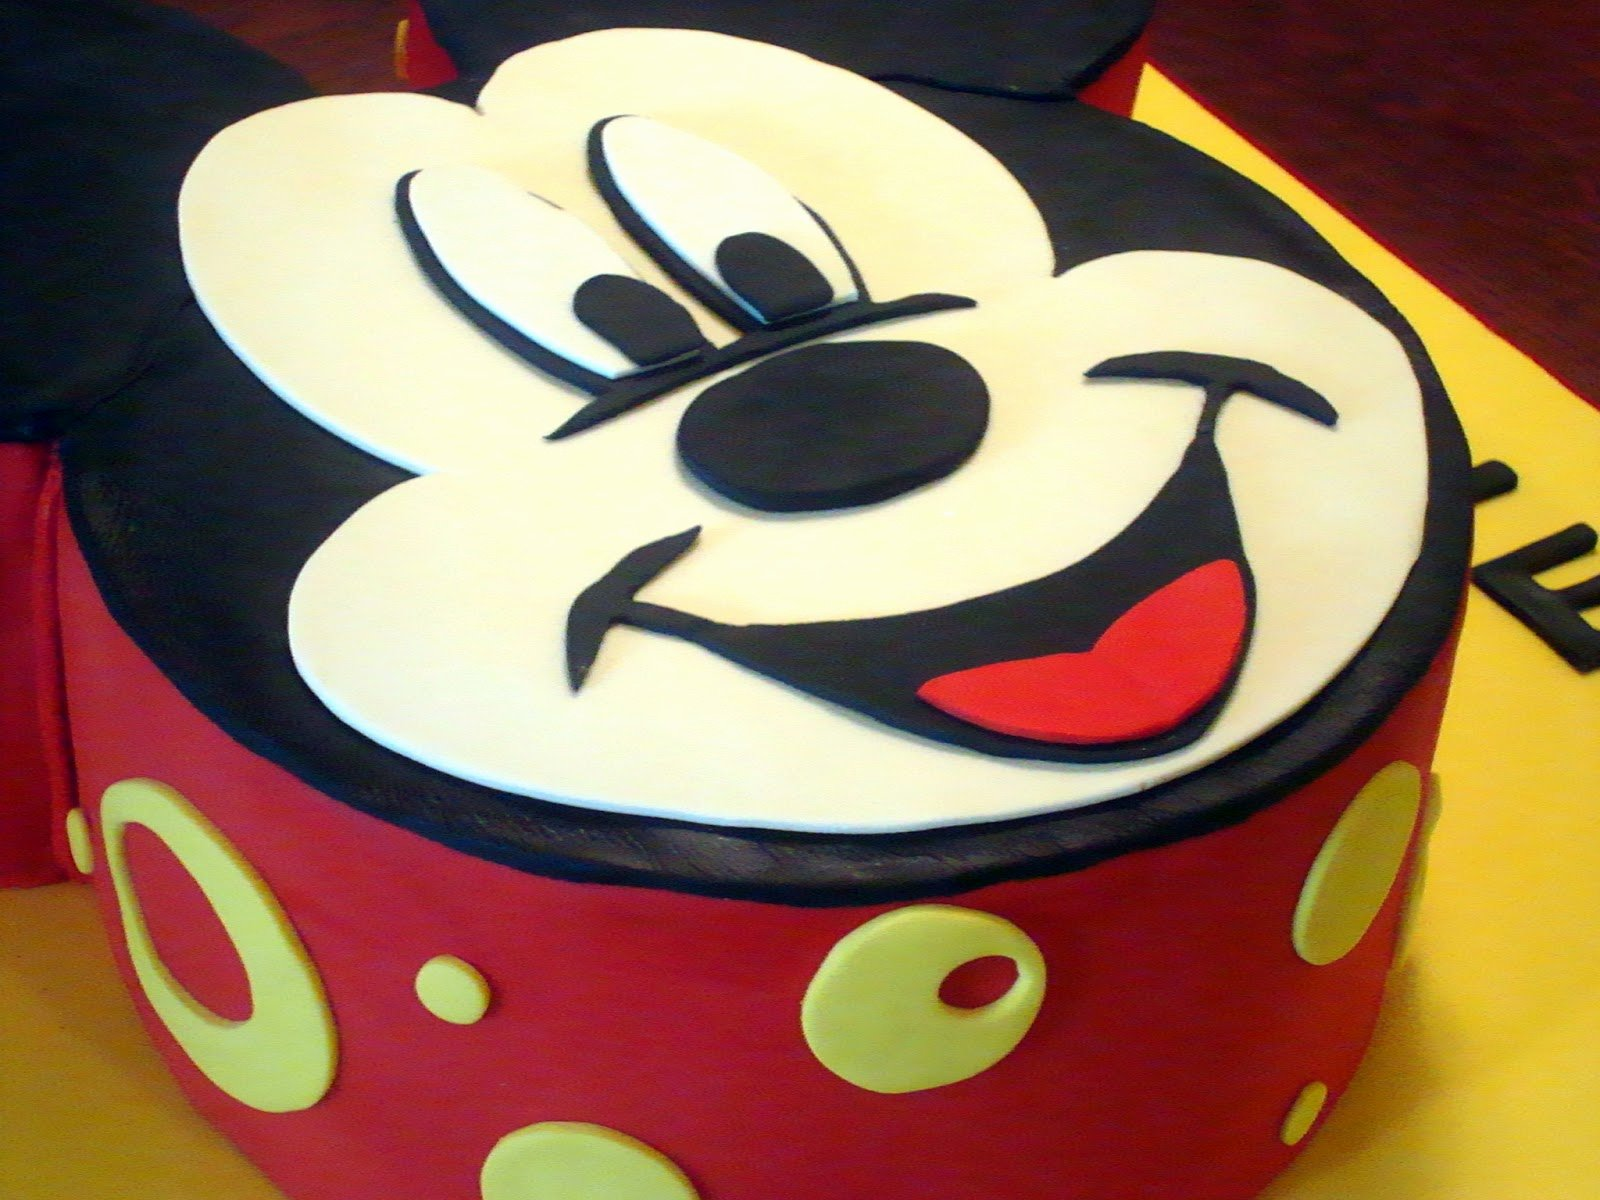 Mickey Mouse Face Template Elegant Best S Of Mickey Mouse Cake Template Mickey Mouse Face Cake Template Mickey Mouse Face